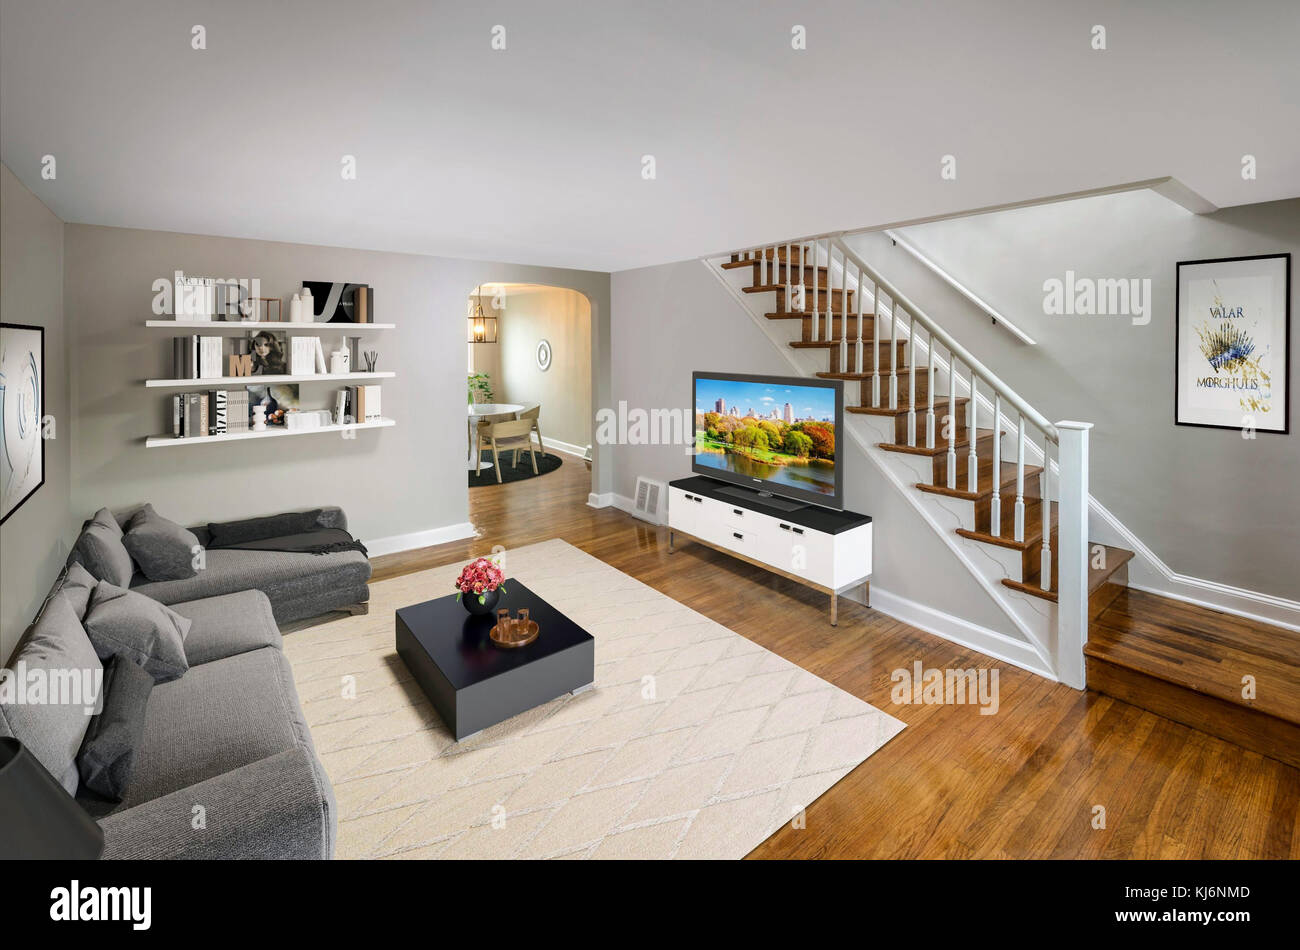 stairs american home flat apartment stock photos stairs american